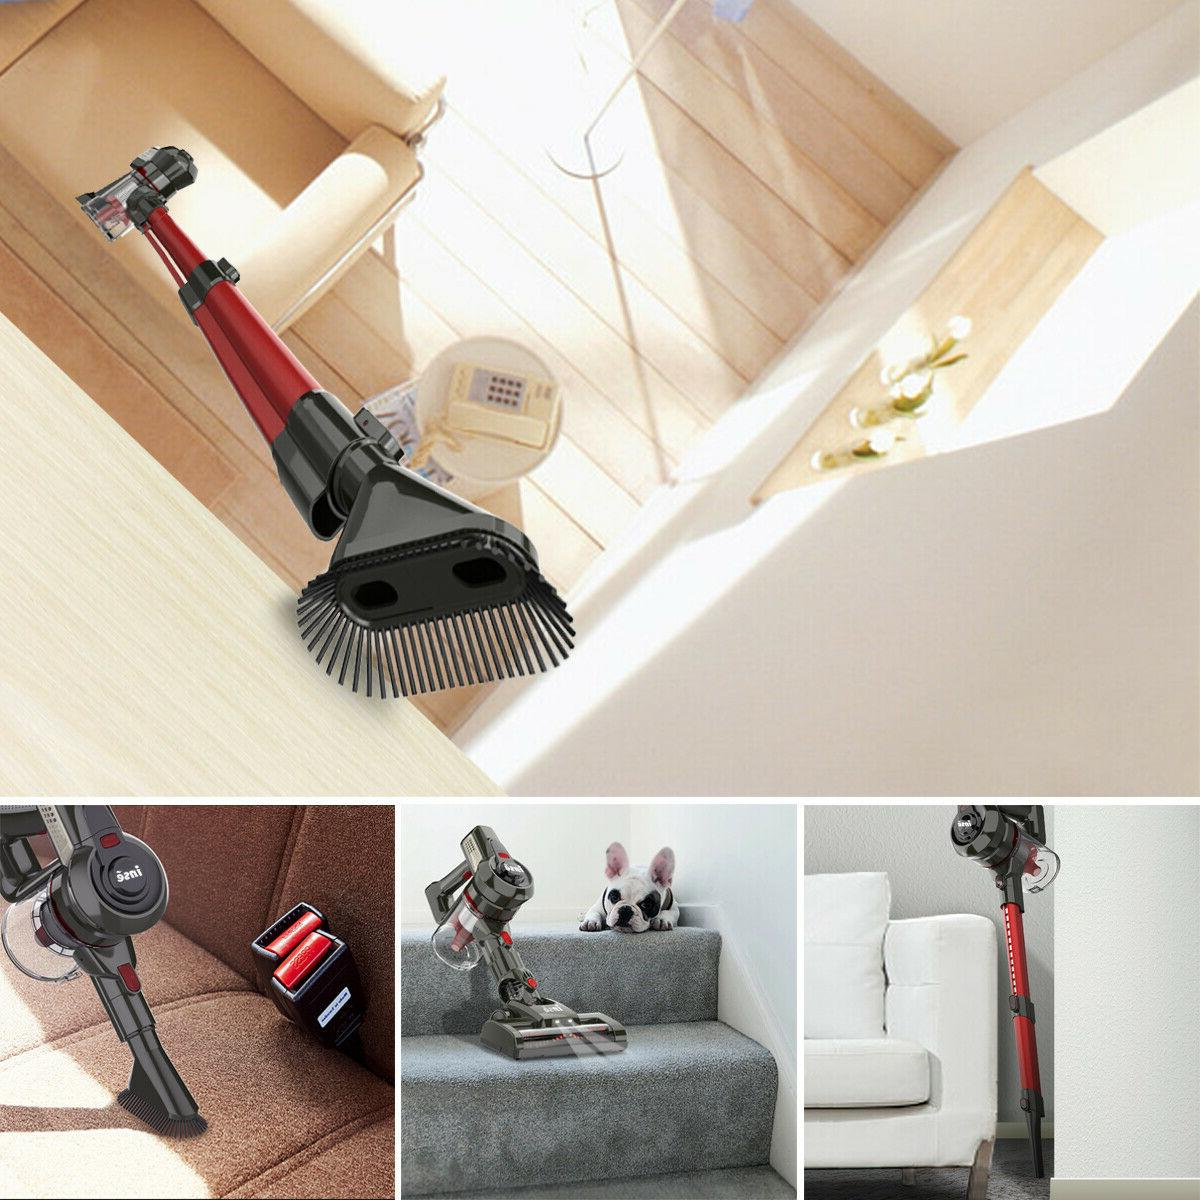 INSE Cordless Cleaner Stick Compact Bagless